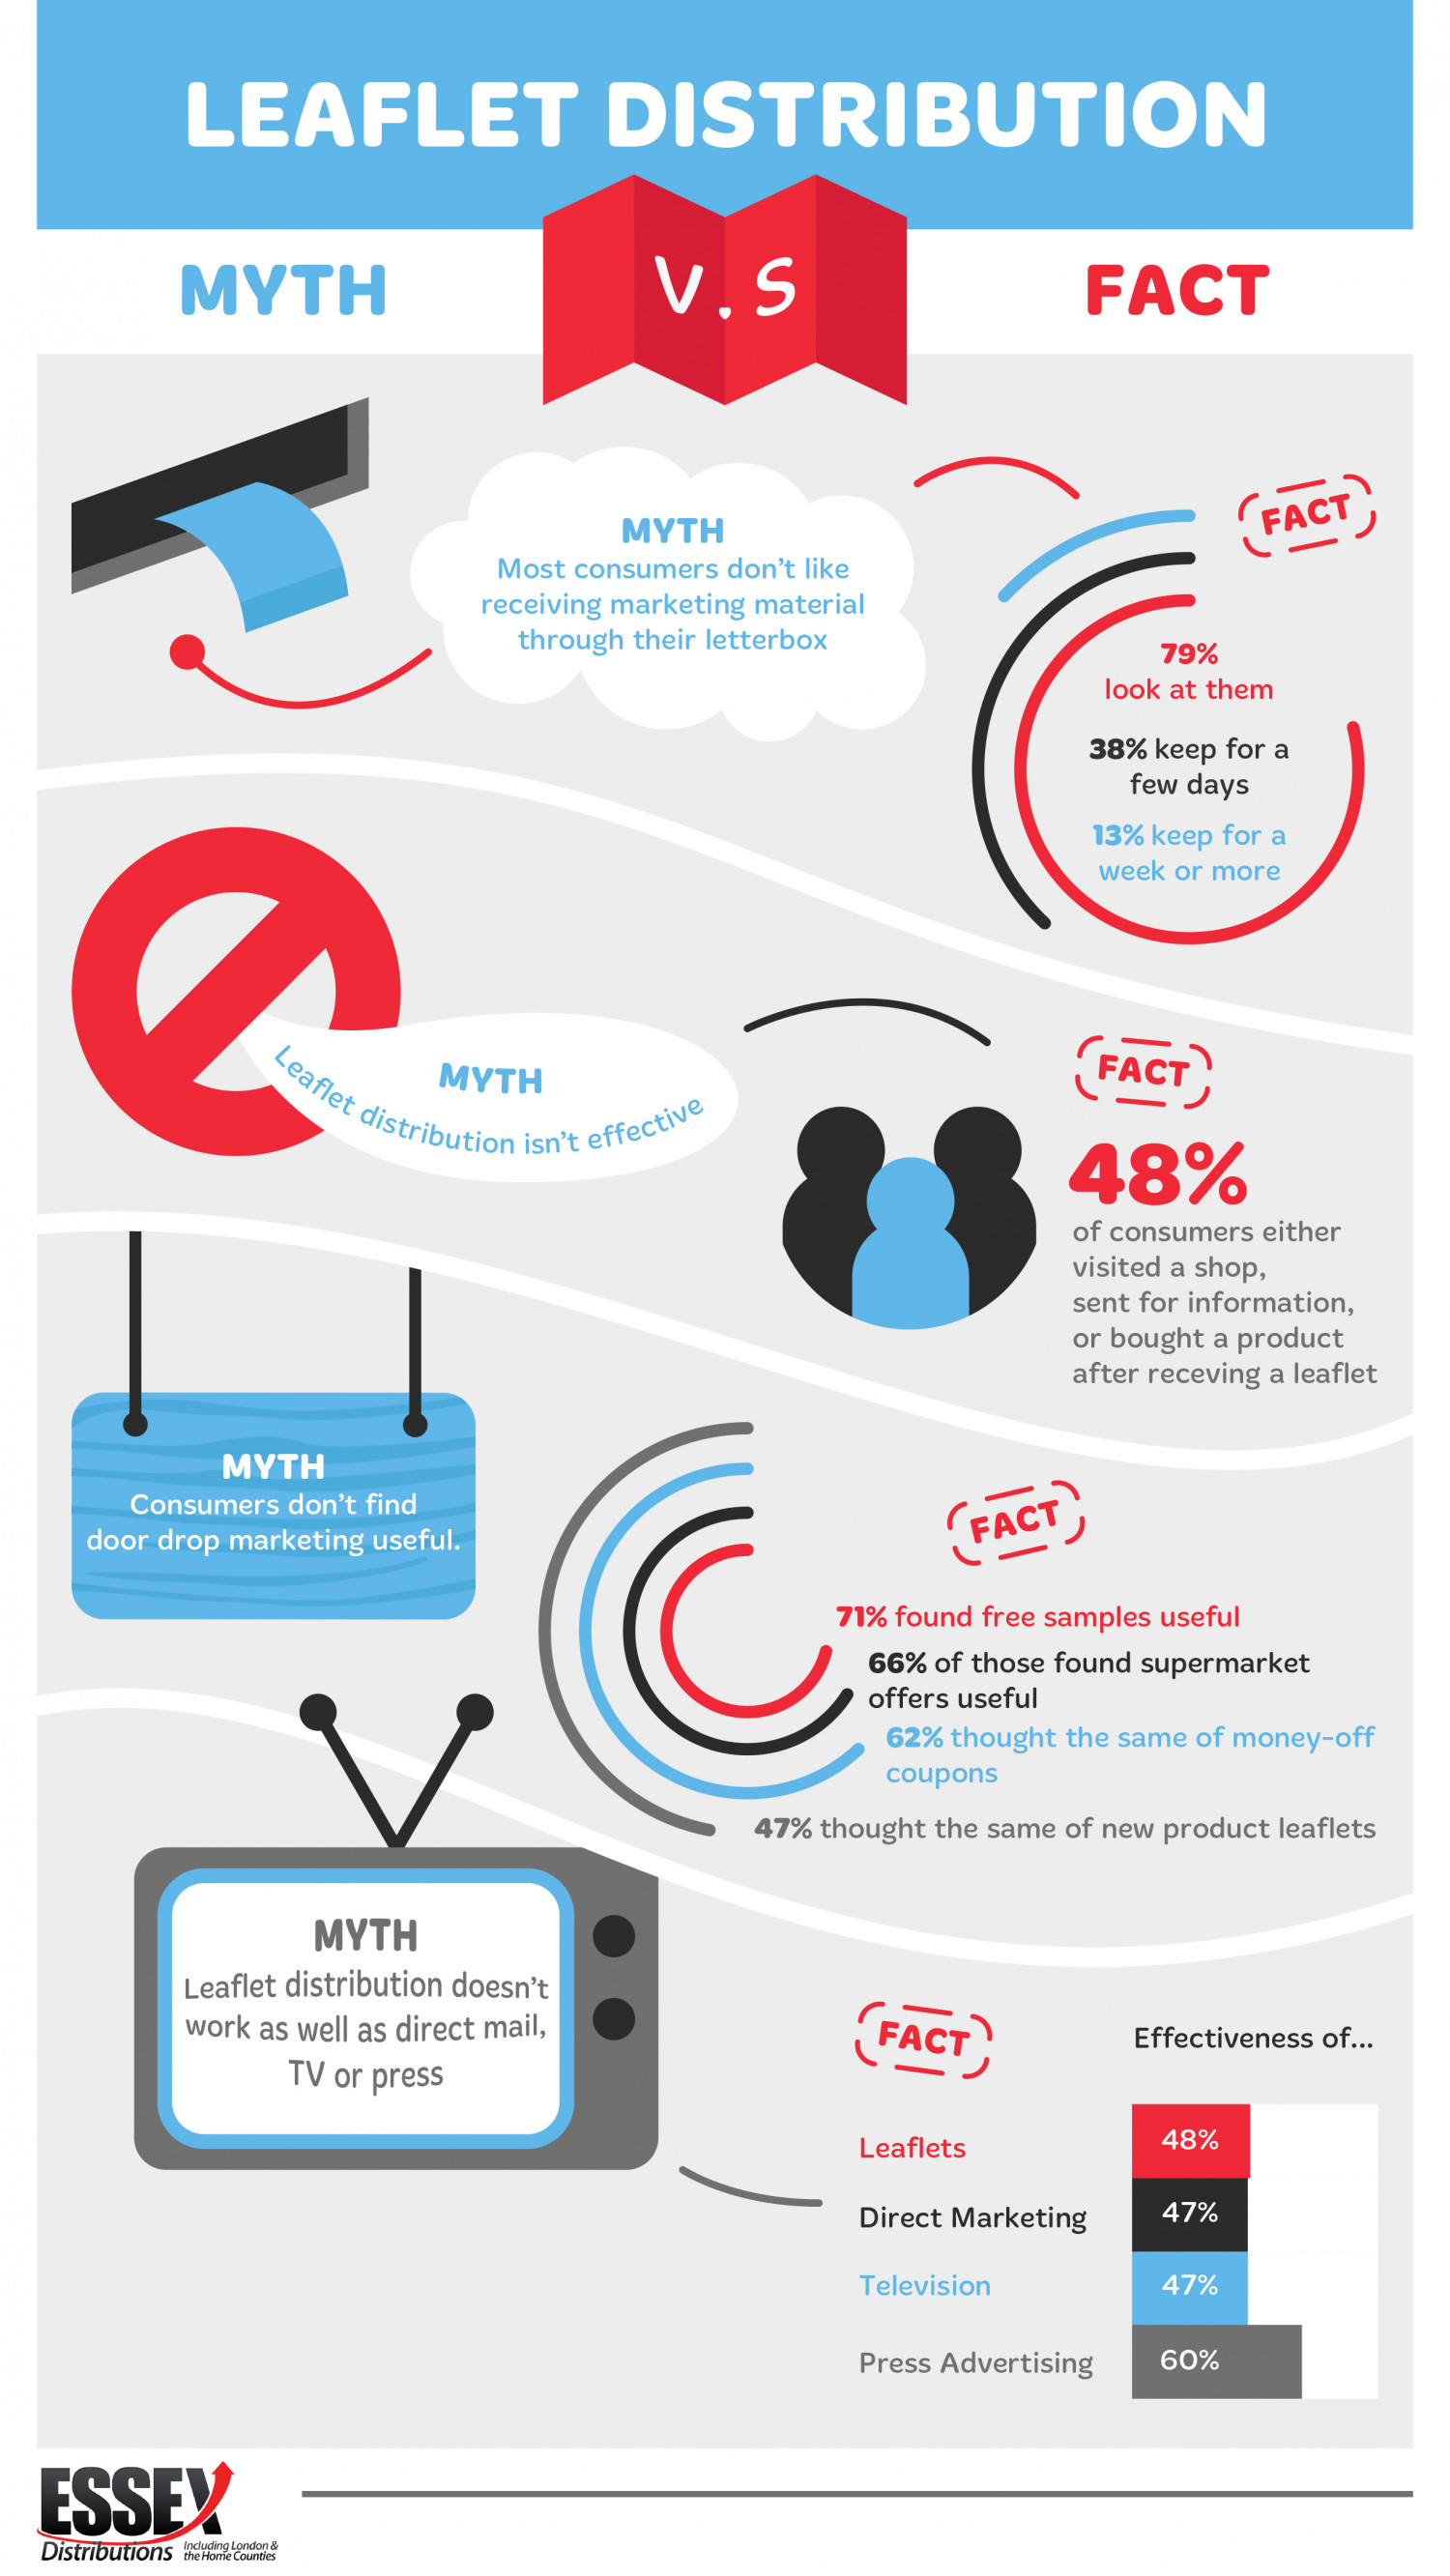 Leaflet Distribution: Myth VS Fact Infographic